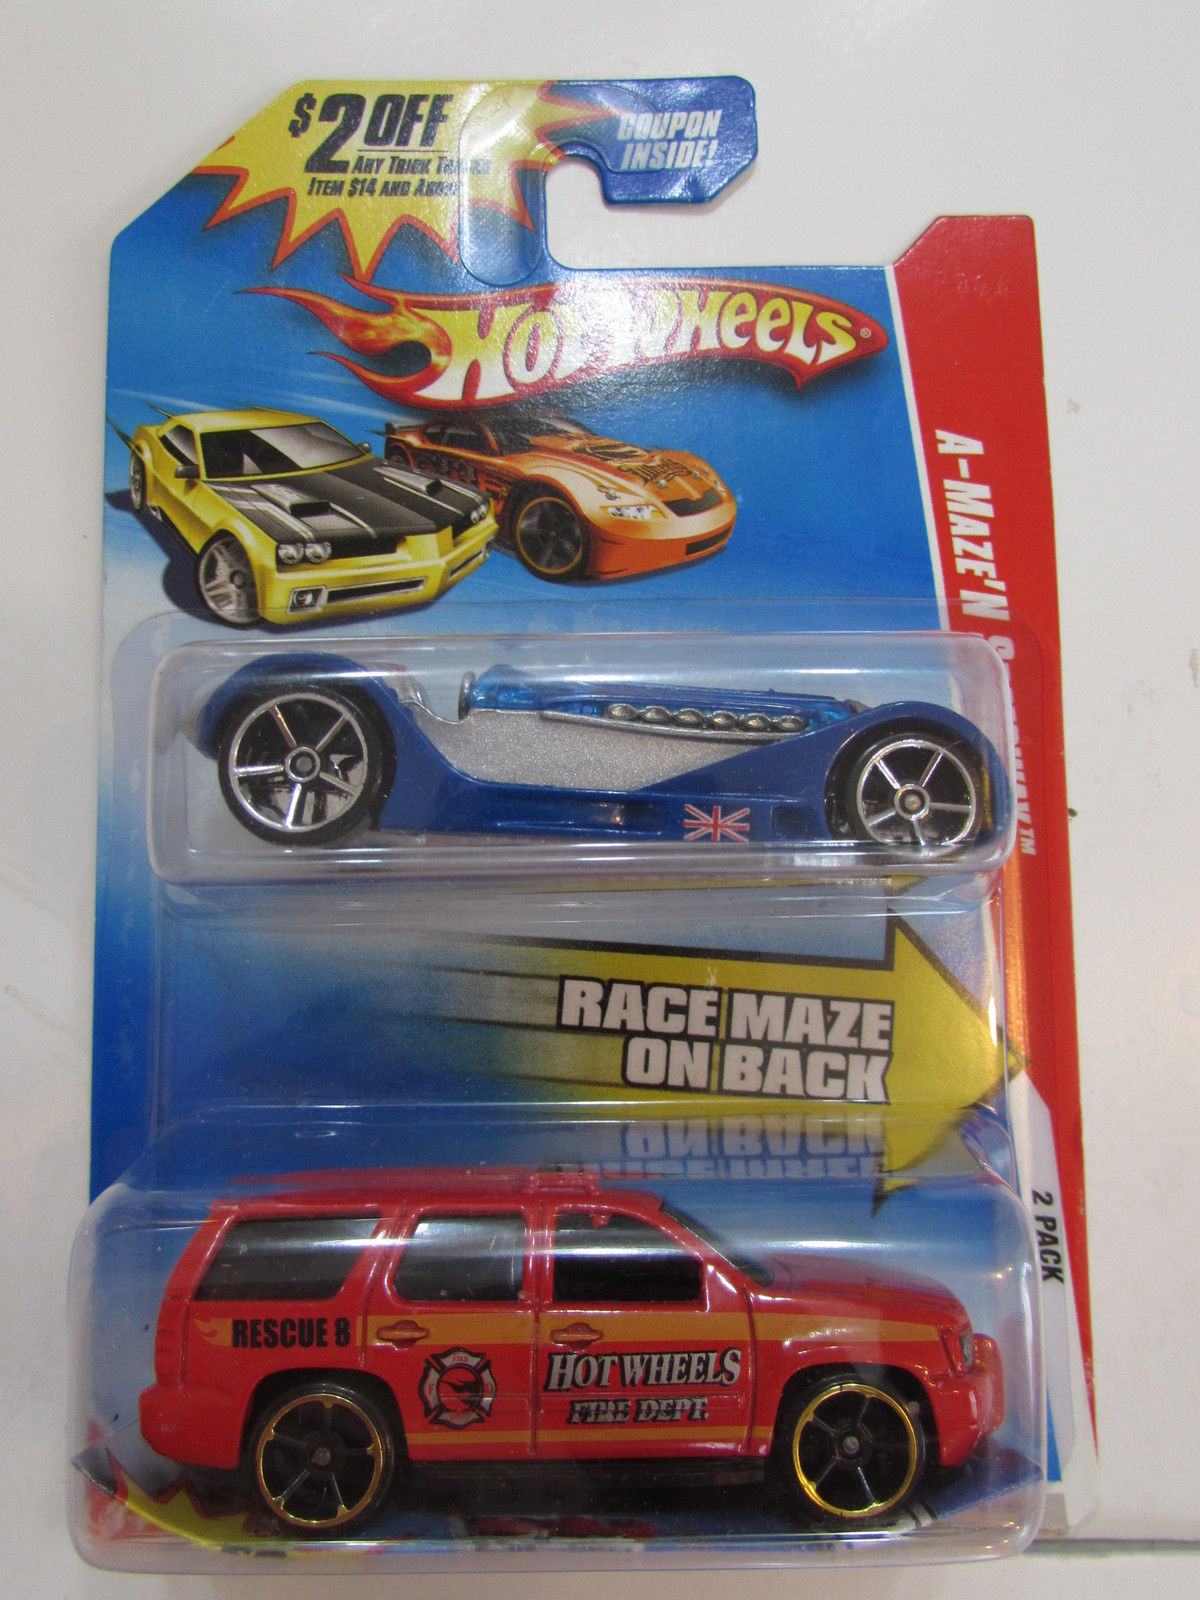 HOT WHEELS A-MAZE'N SPEEDWAY 2 CAR PACK BRIT SPEED - CHEVY TRUCK